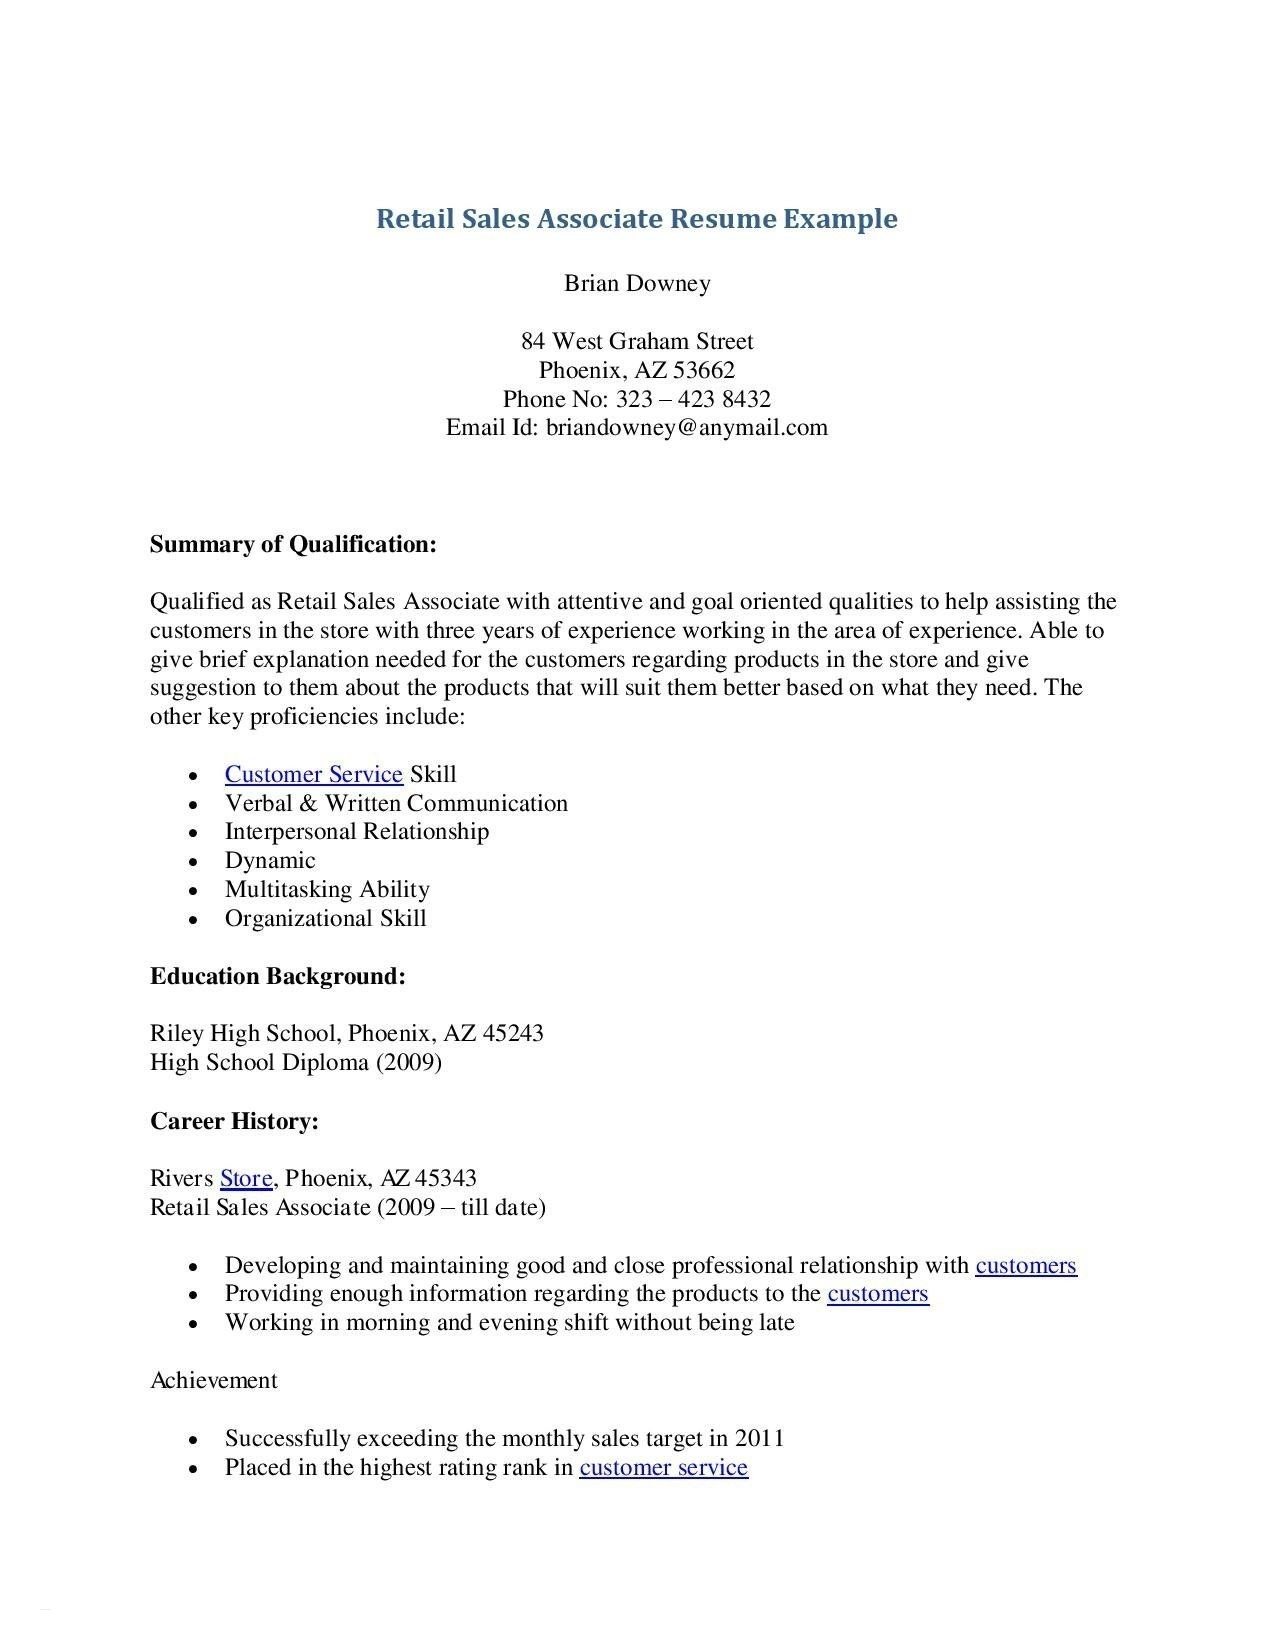 Sales Manager Resume - Retail Sales Manager Resume Lovely Retail Resume Sample